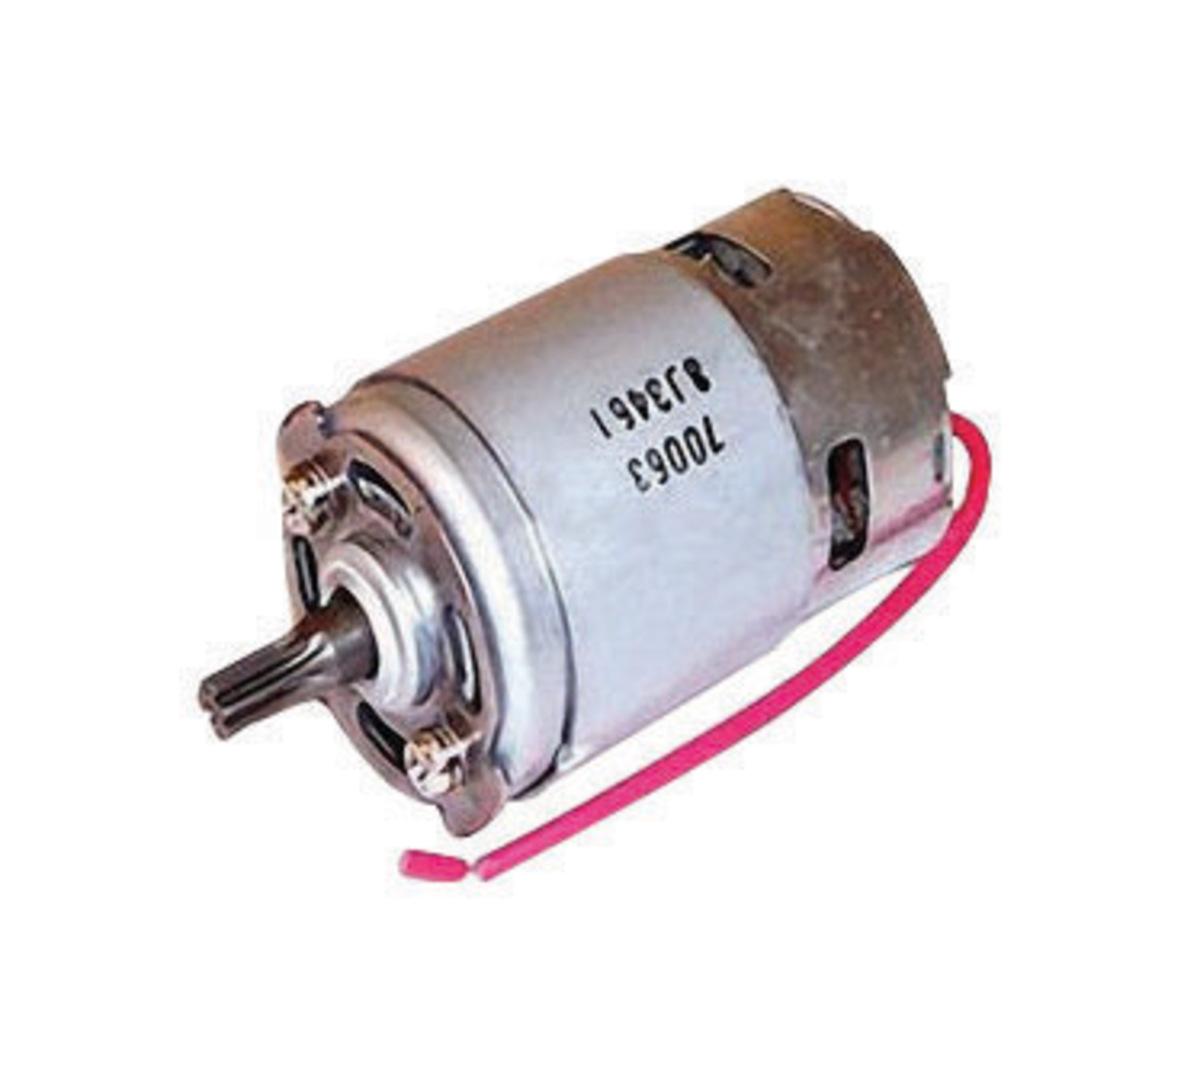 Airgas Met23 30 0105 Milwaukee Motor For Use With